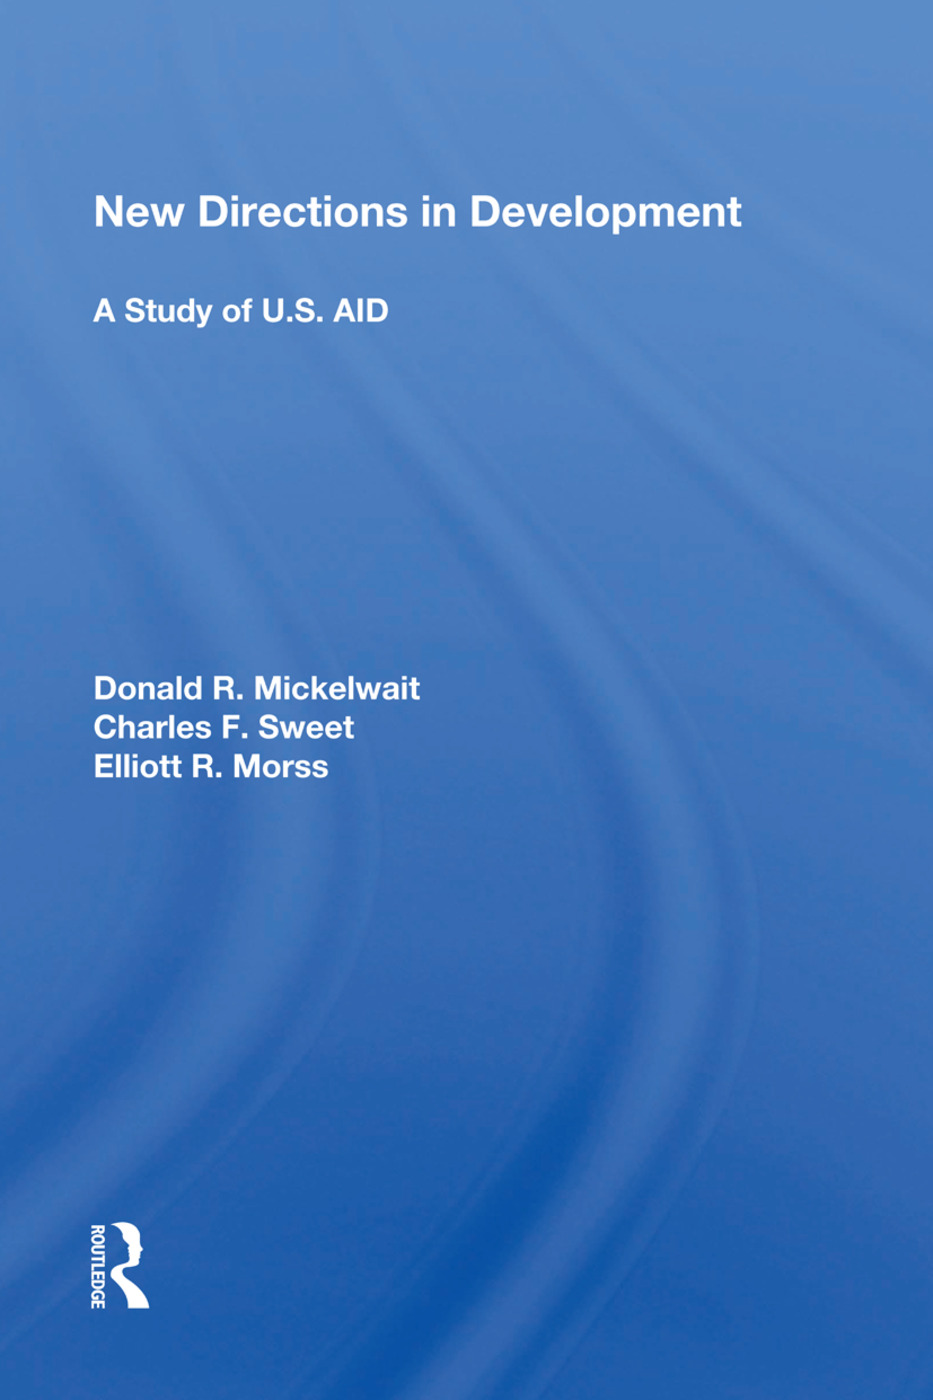 New Directions in Development: A Study of U.S. AID